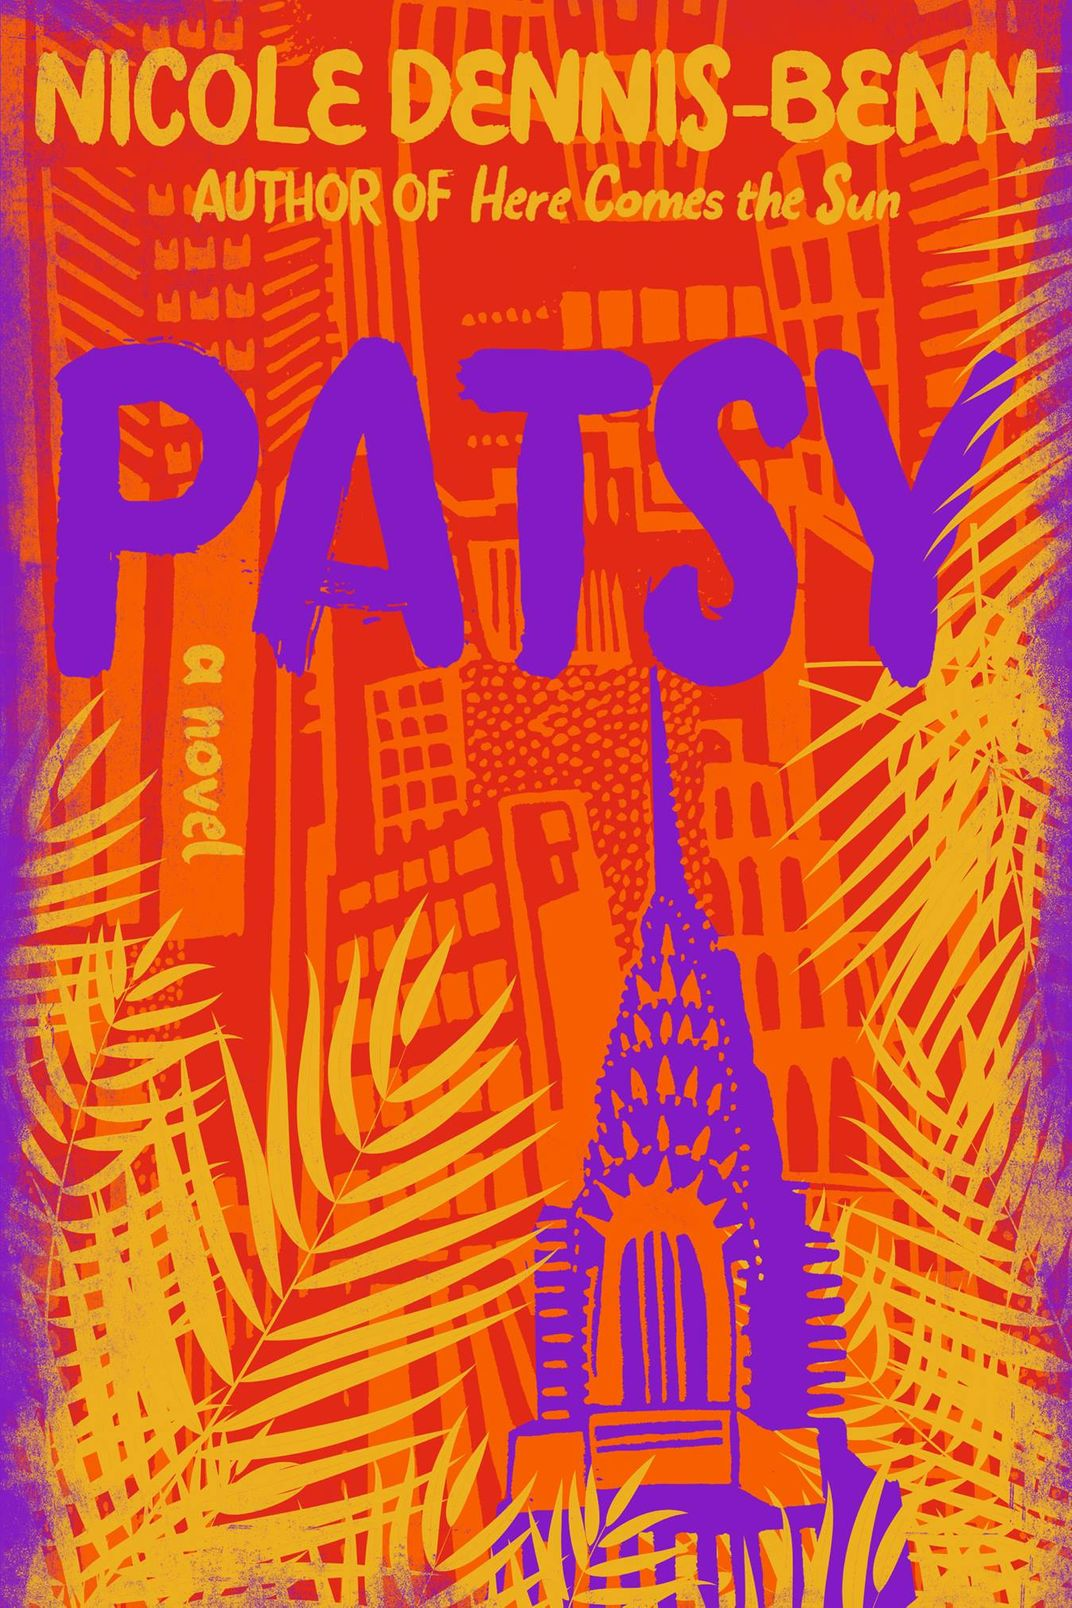 Patsy, by Nicole Dennis-Benn (Liveright, June 4)